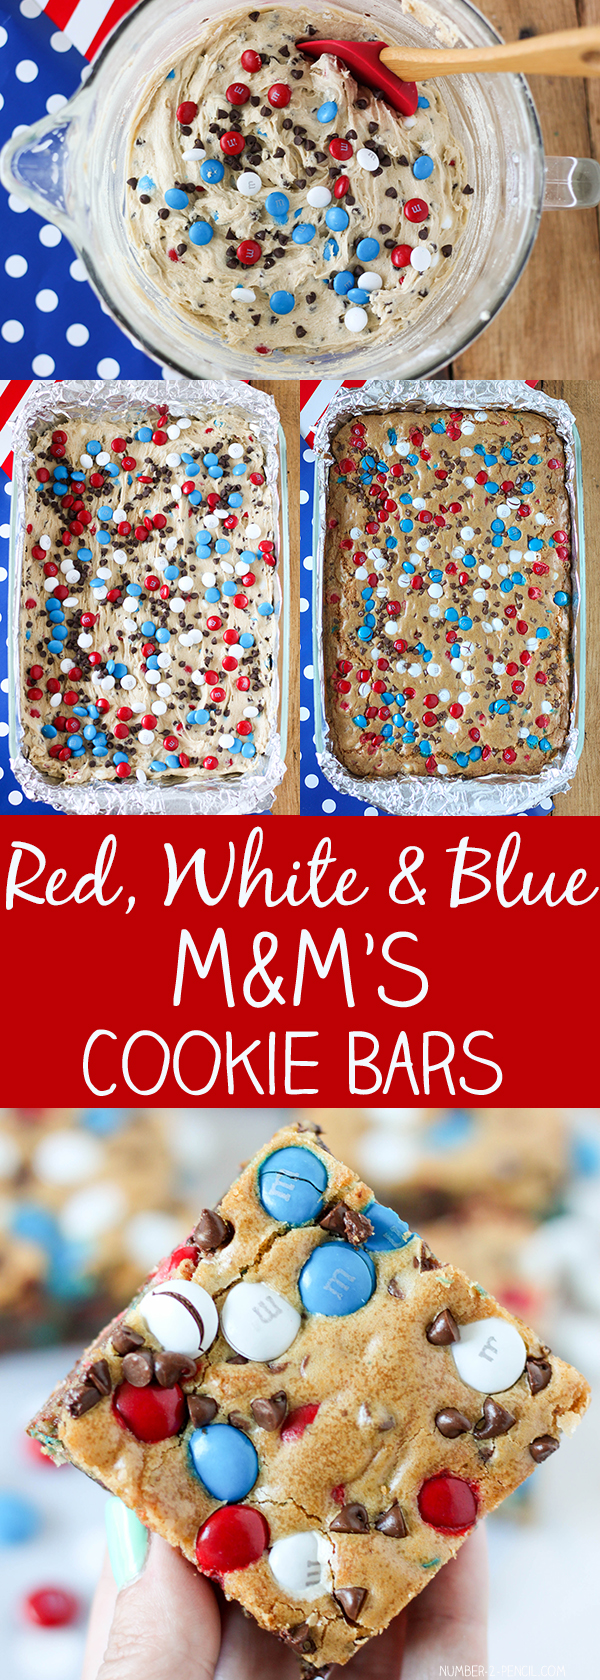 Patriotic Red White and Blue M&M'S Cookie Bars- Bake these up for the 4th of July or Memorial Day, they are perfect for feeding a crowd and so much easier than traditional cookies. More family favorite recipes on number-2-pencil.com. #familyfavorites